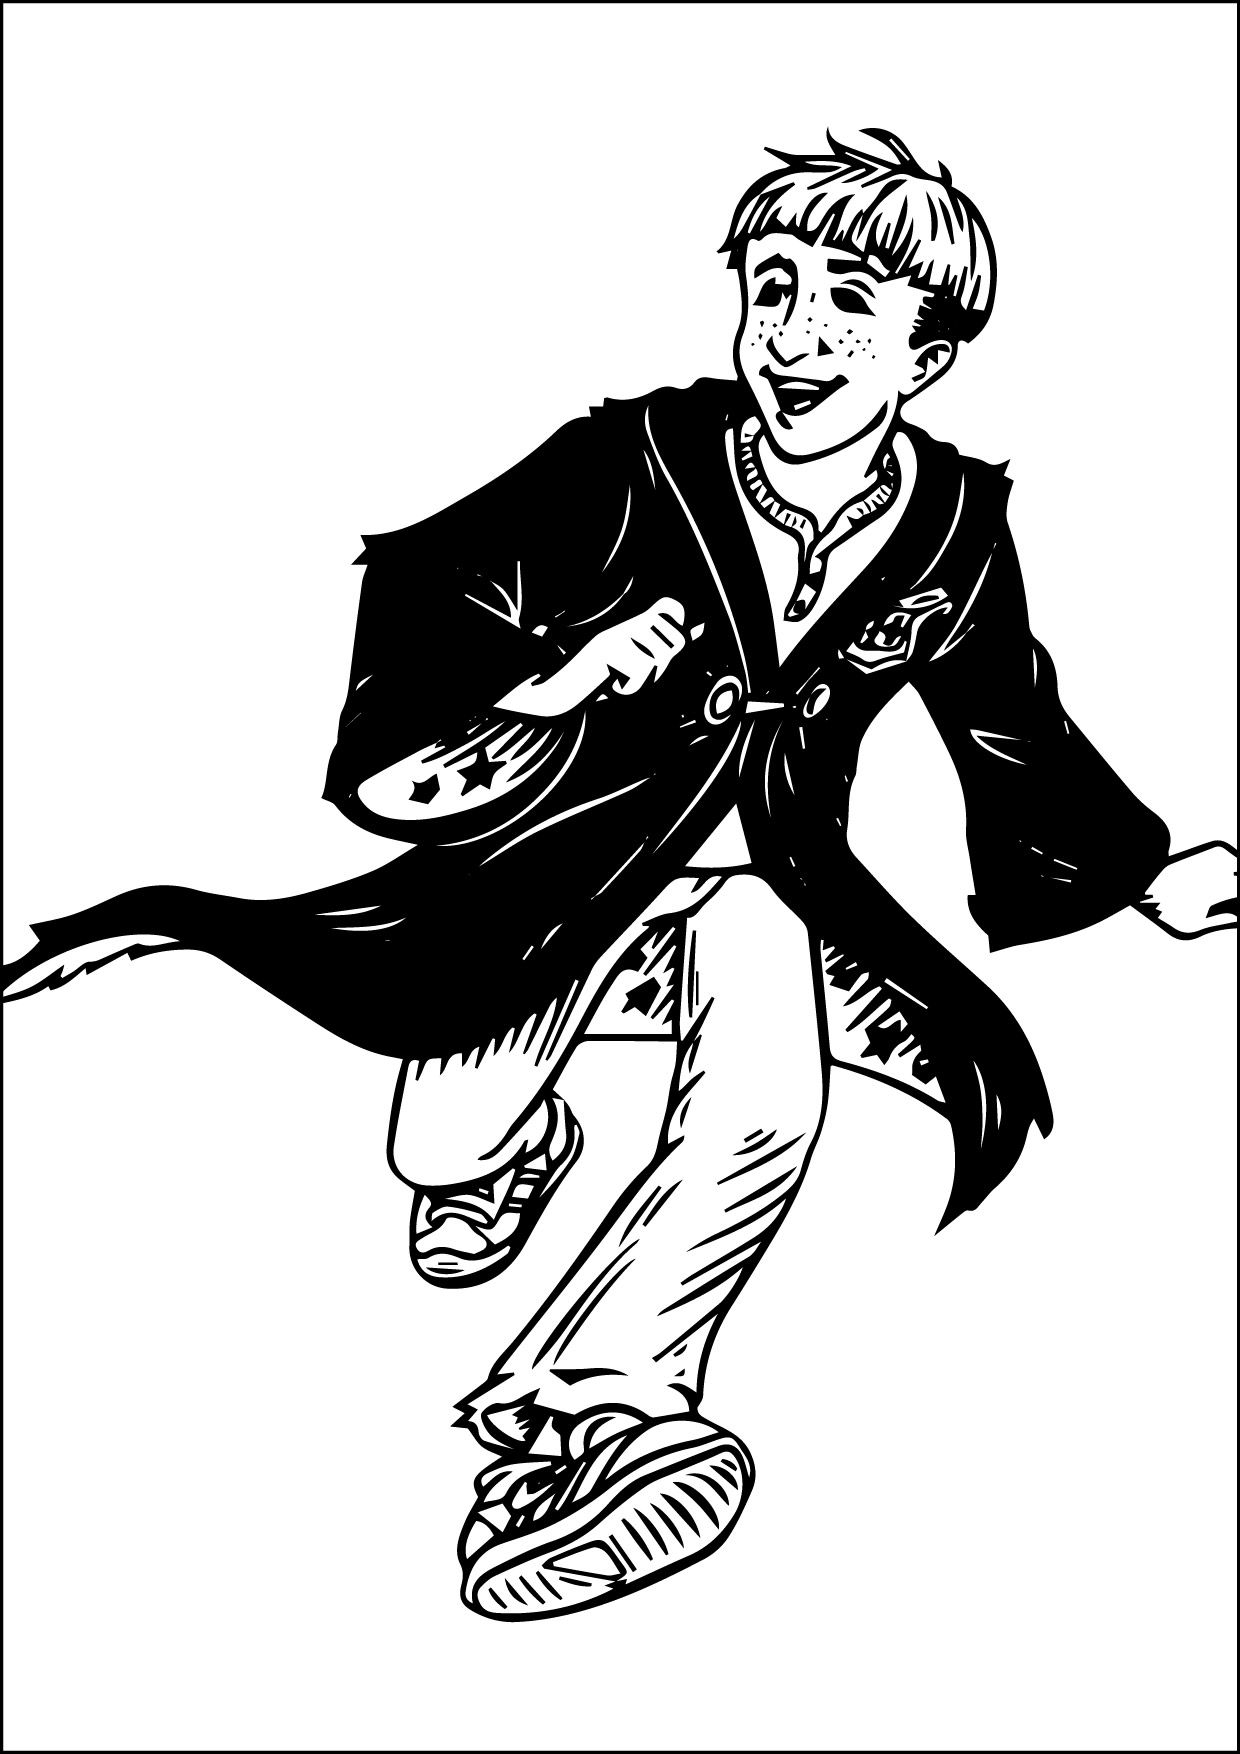 Nice Harry Potter Para Colorear 06 09 2015 234303 Check More At Http Www Mcoloring Com Index Php Harry Potter Coloring Pages Coloring Pictures Coloring Books